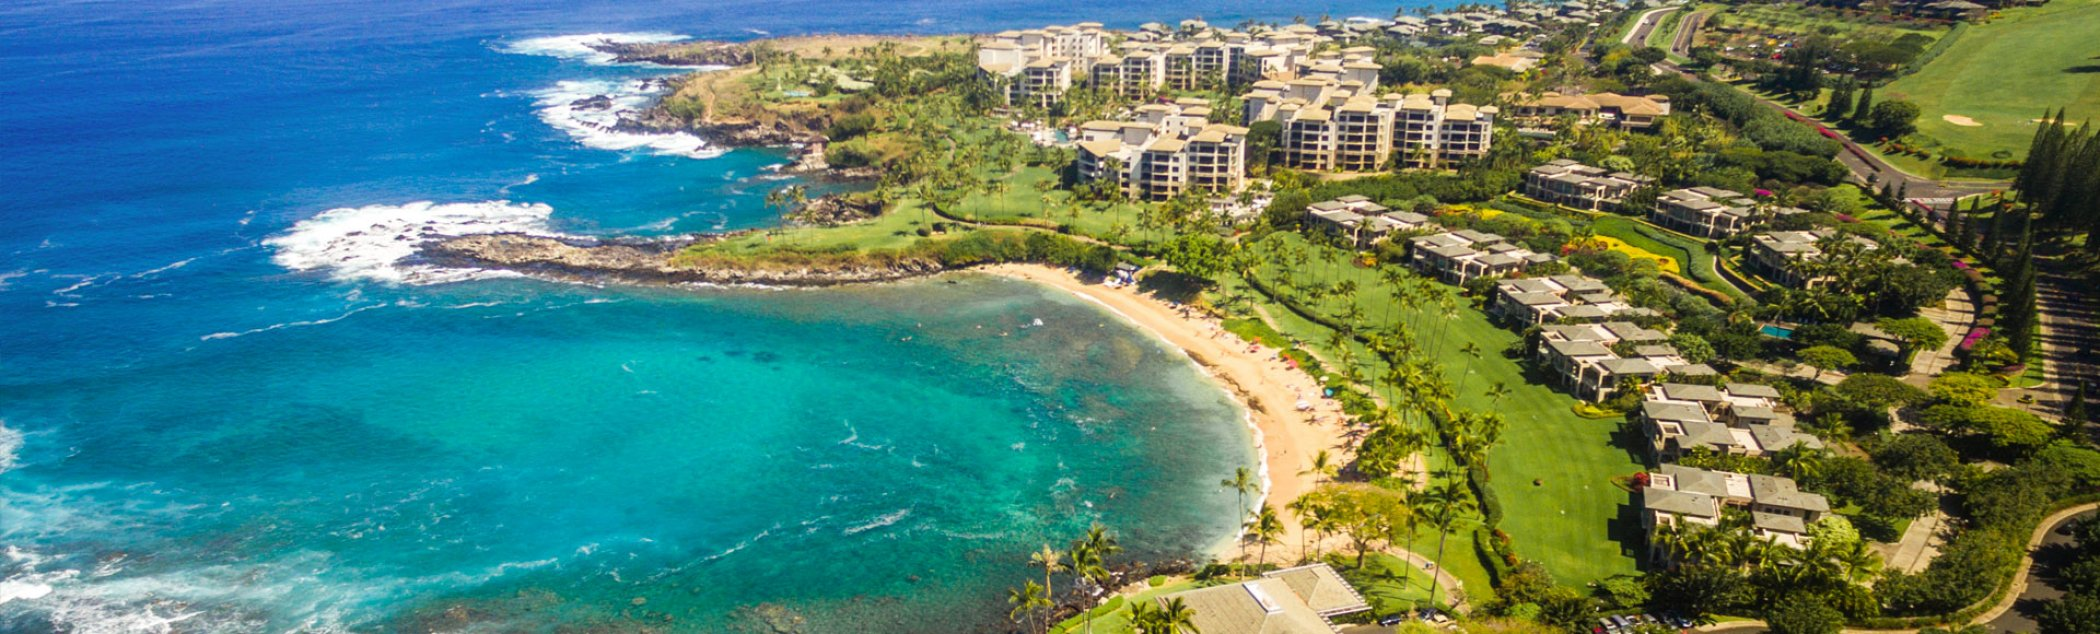 Maui Must See and Do – Maui Tourist Attractions Map